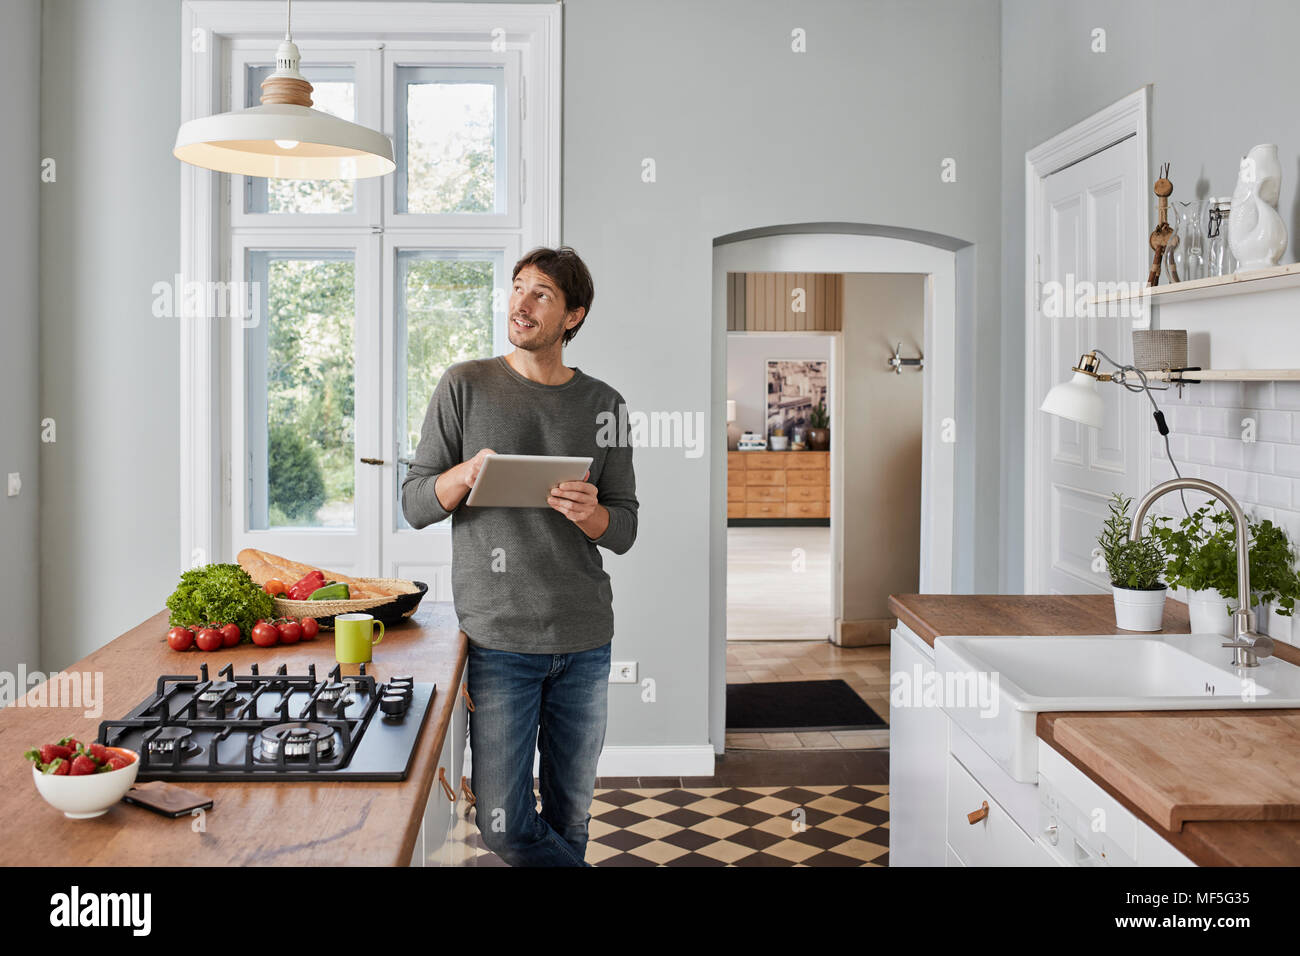 Man using tablet in kitchen looking at ceiling lamp - Stock Image